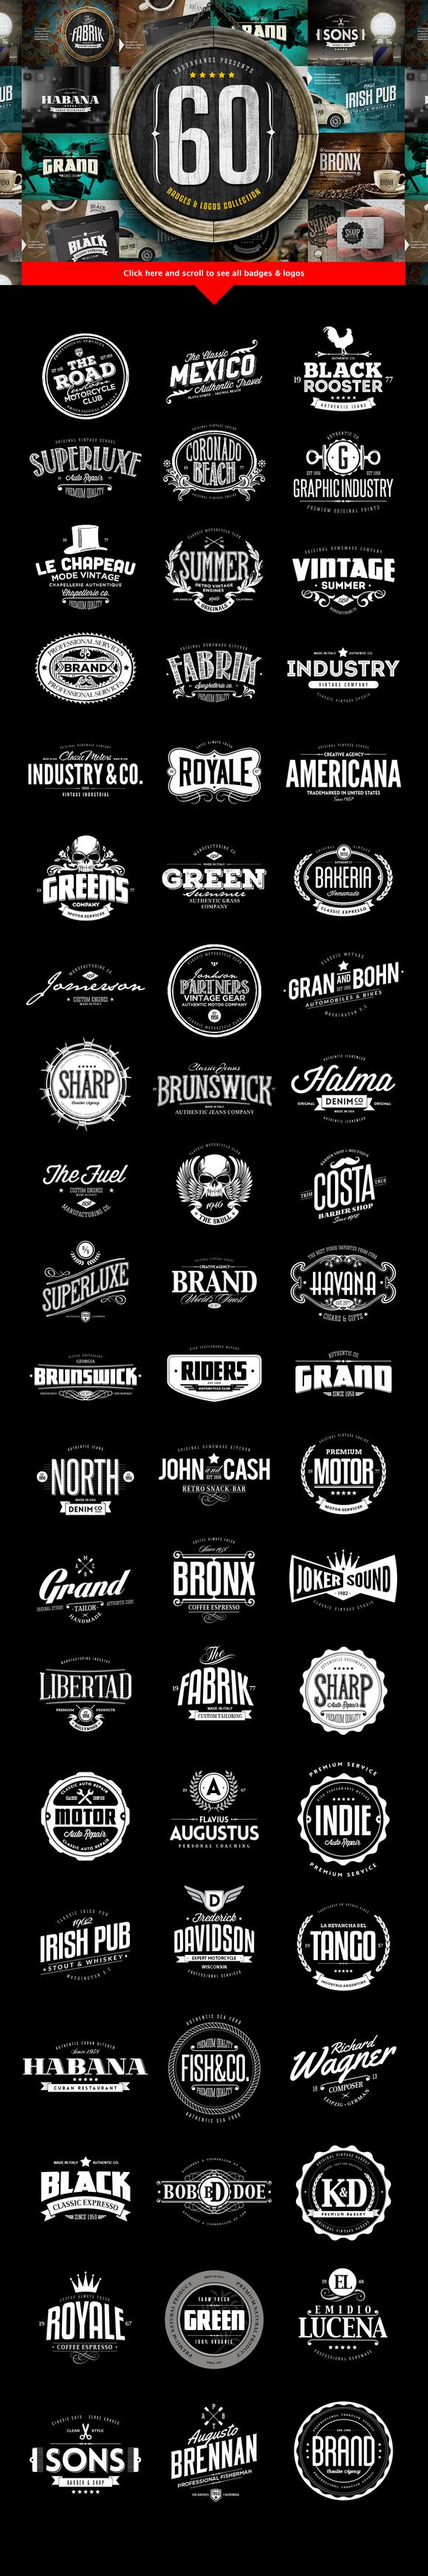 Check out 60 Badges & Logos Collection by Easybrandz on Creative Market